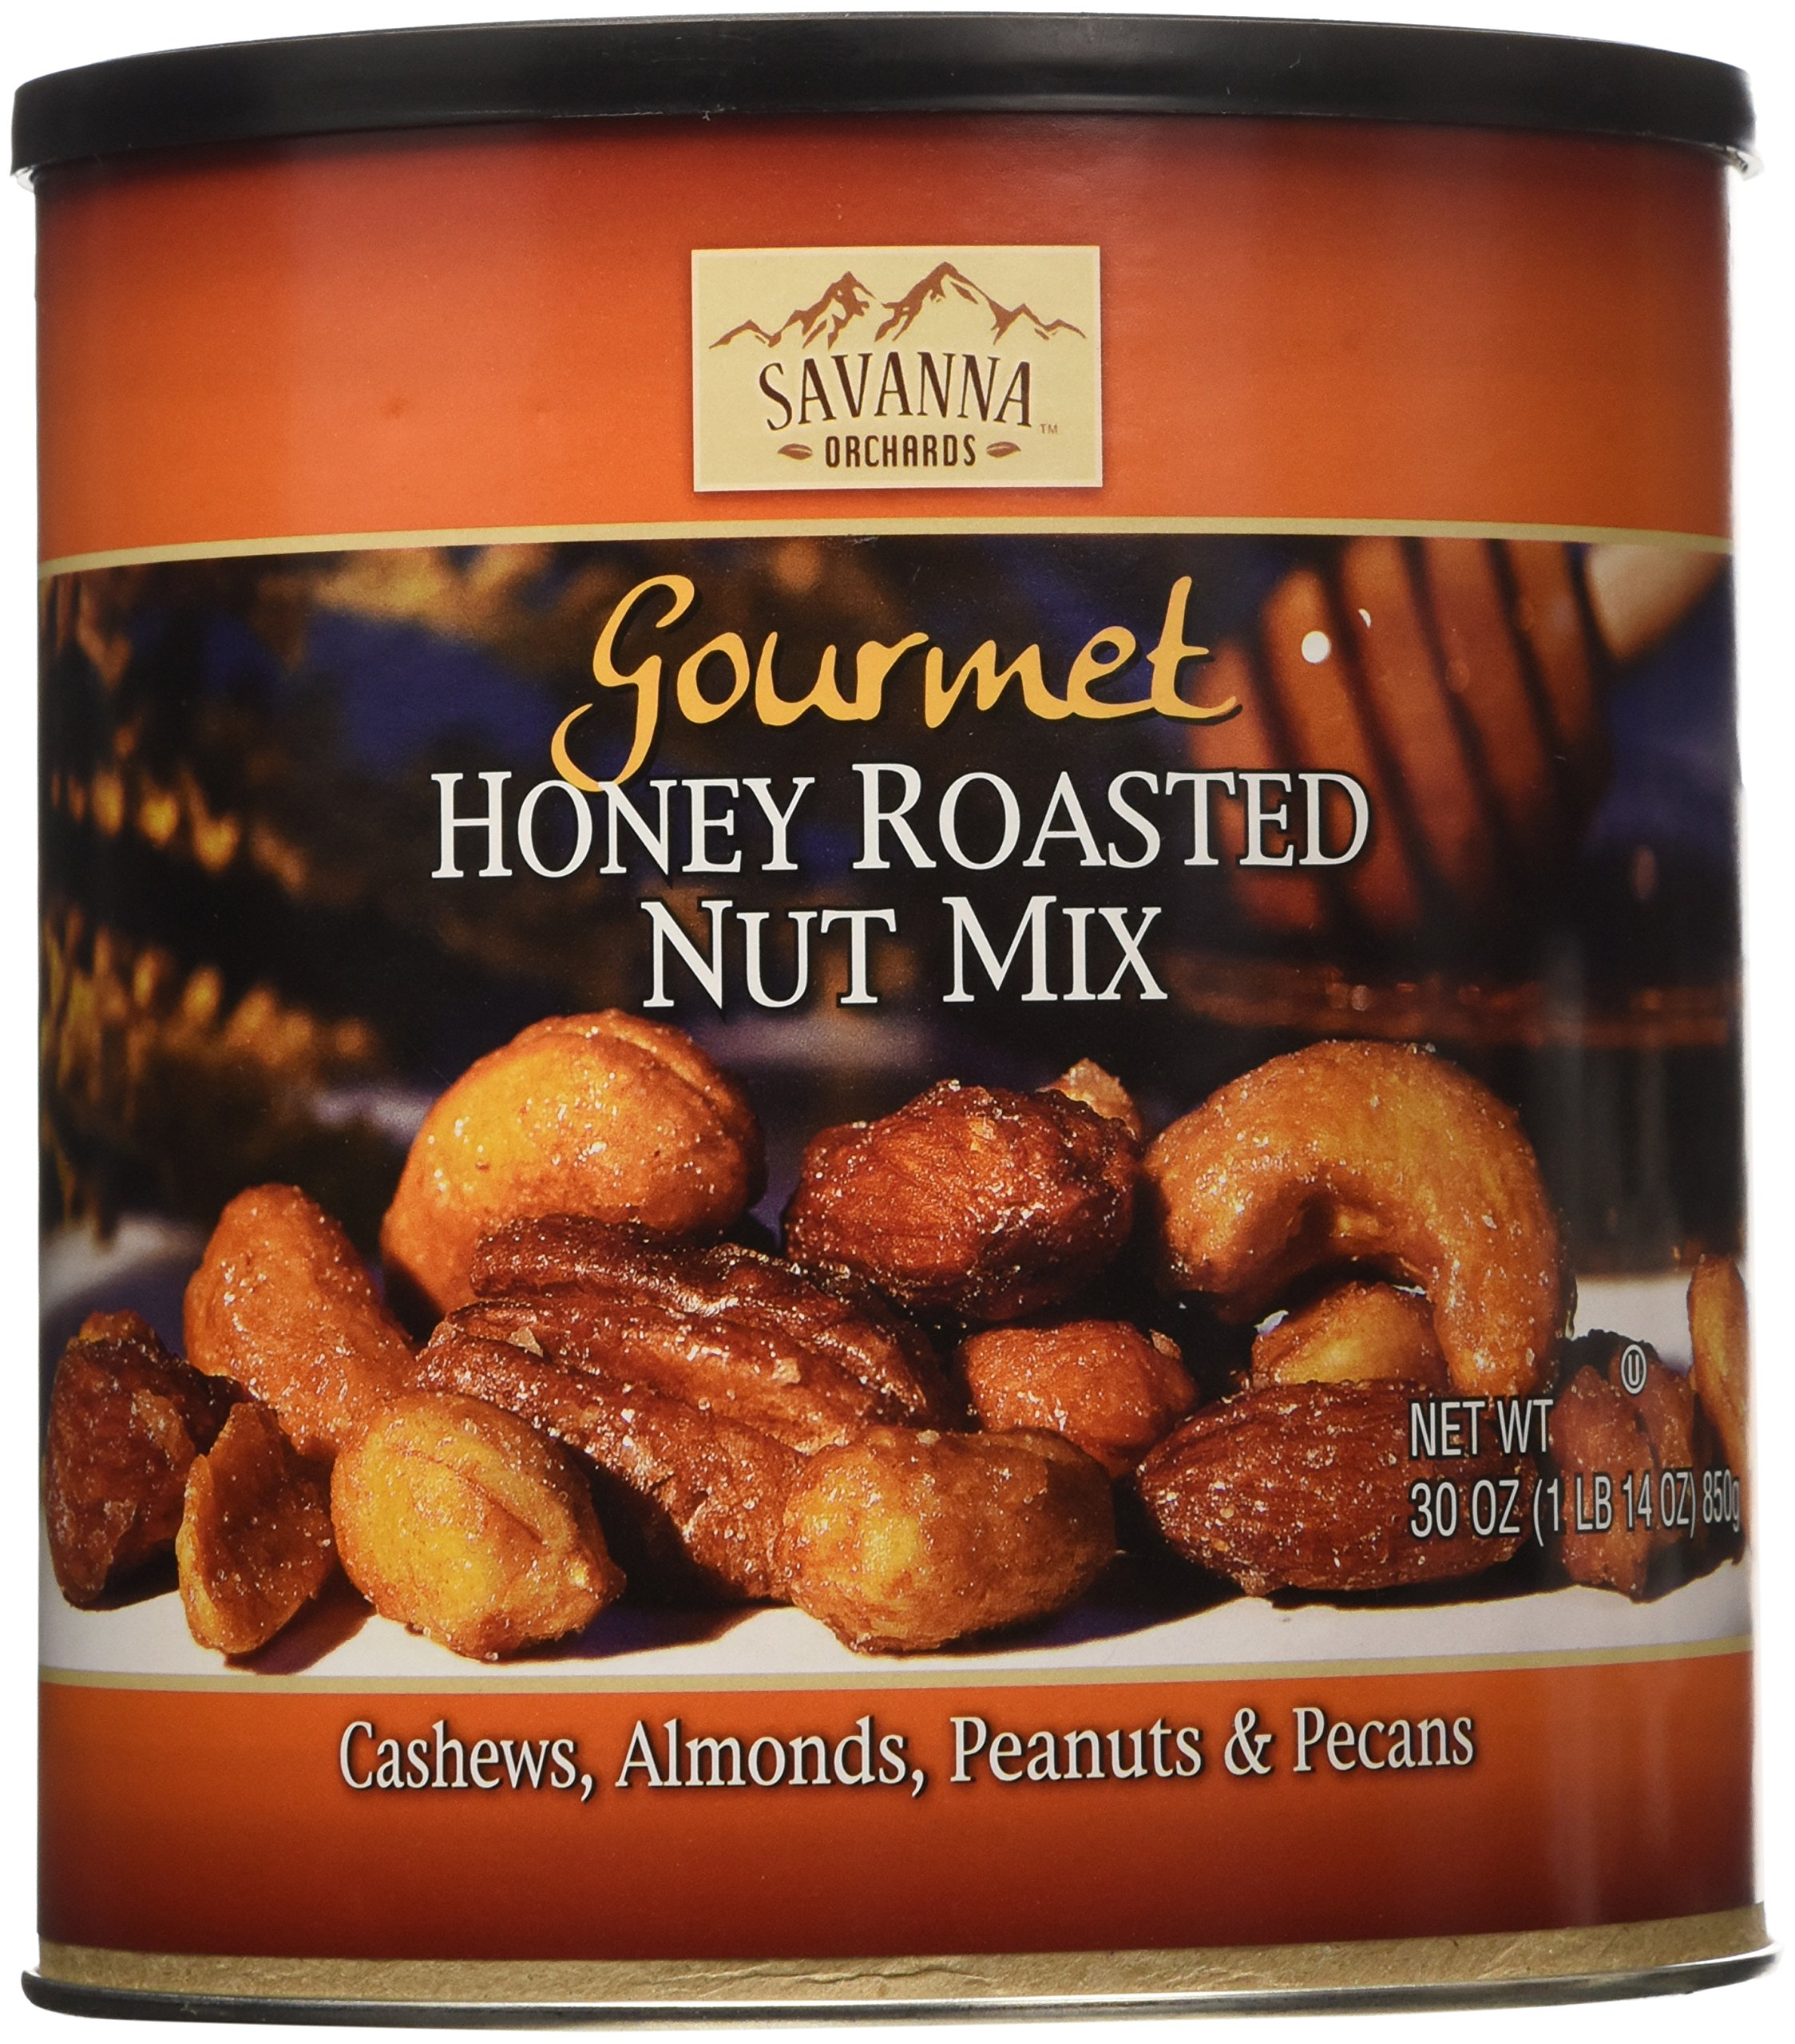 Savanna Orchards Gourmet Honey Roasted Nut Mix, 30 Ounce by Savanna Orchards